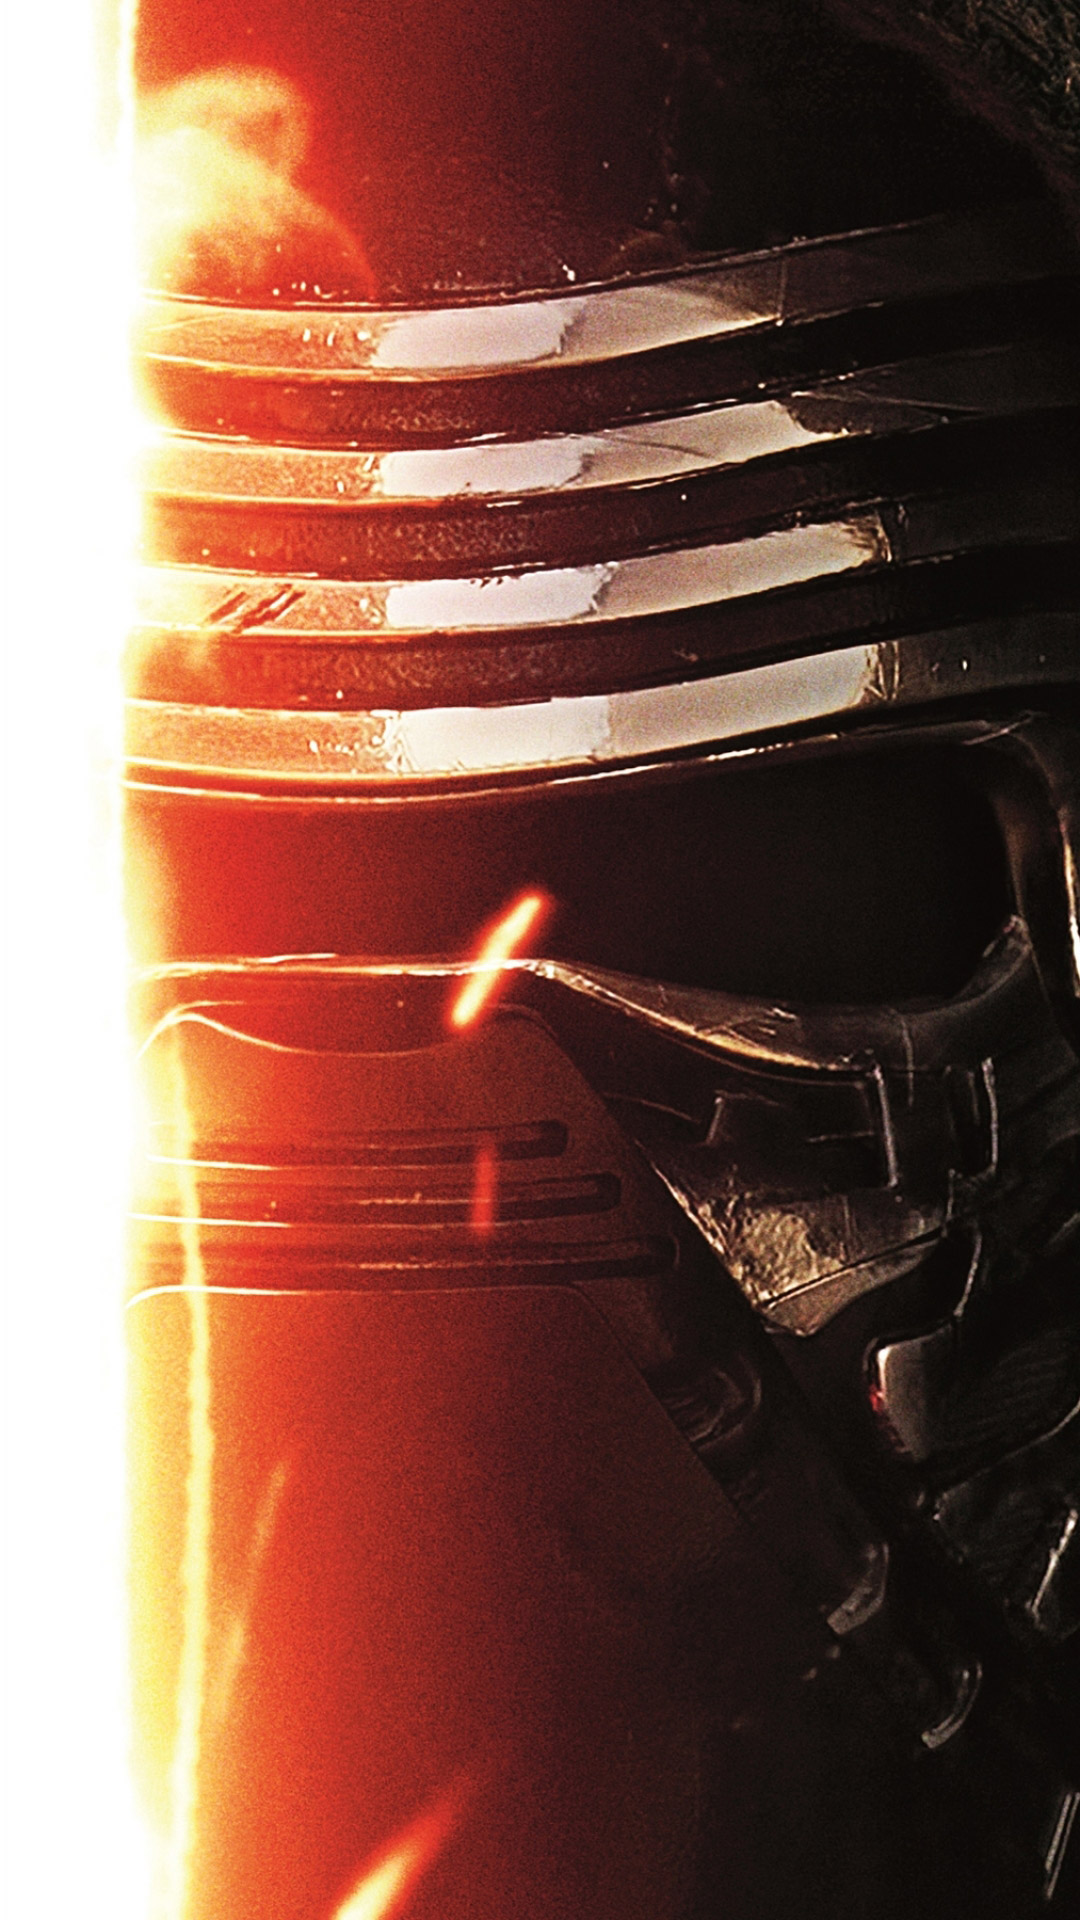 Star-Wars-The-Force-Awakens-Wallpaper-Kylo-Ren-Lightsaber